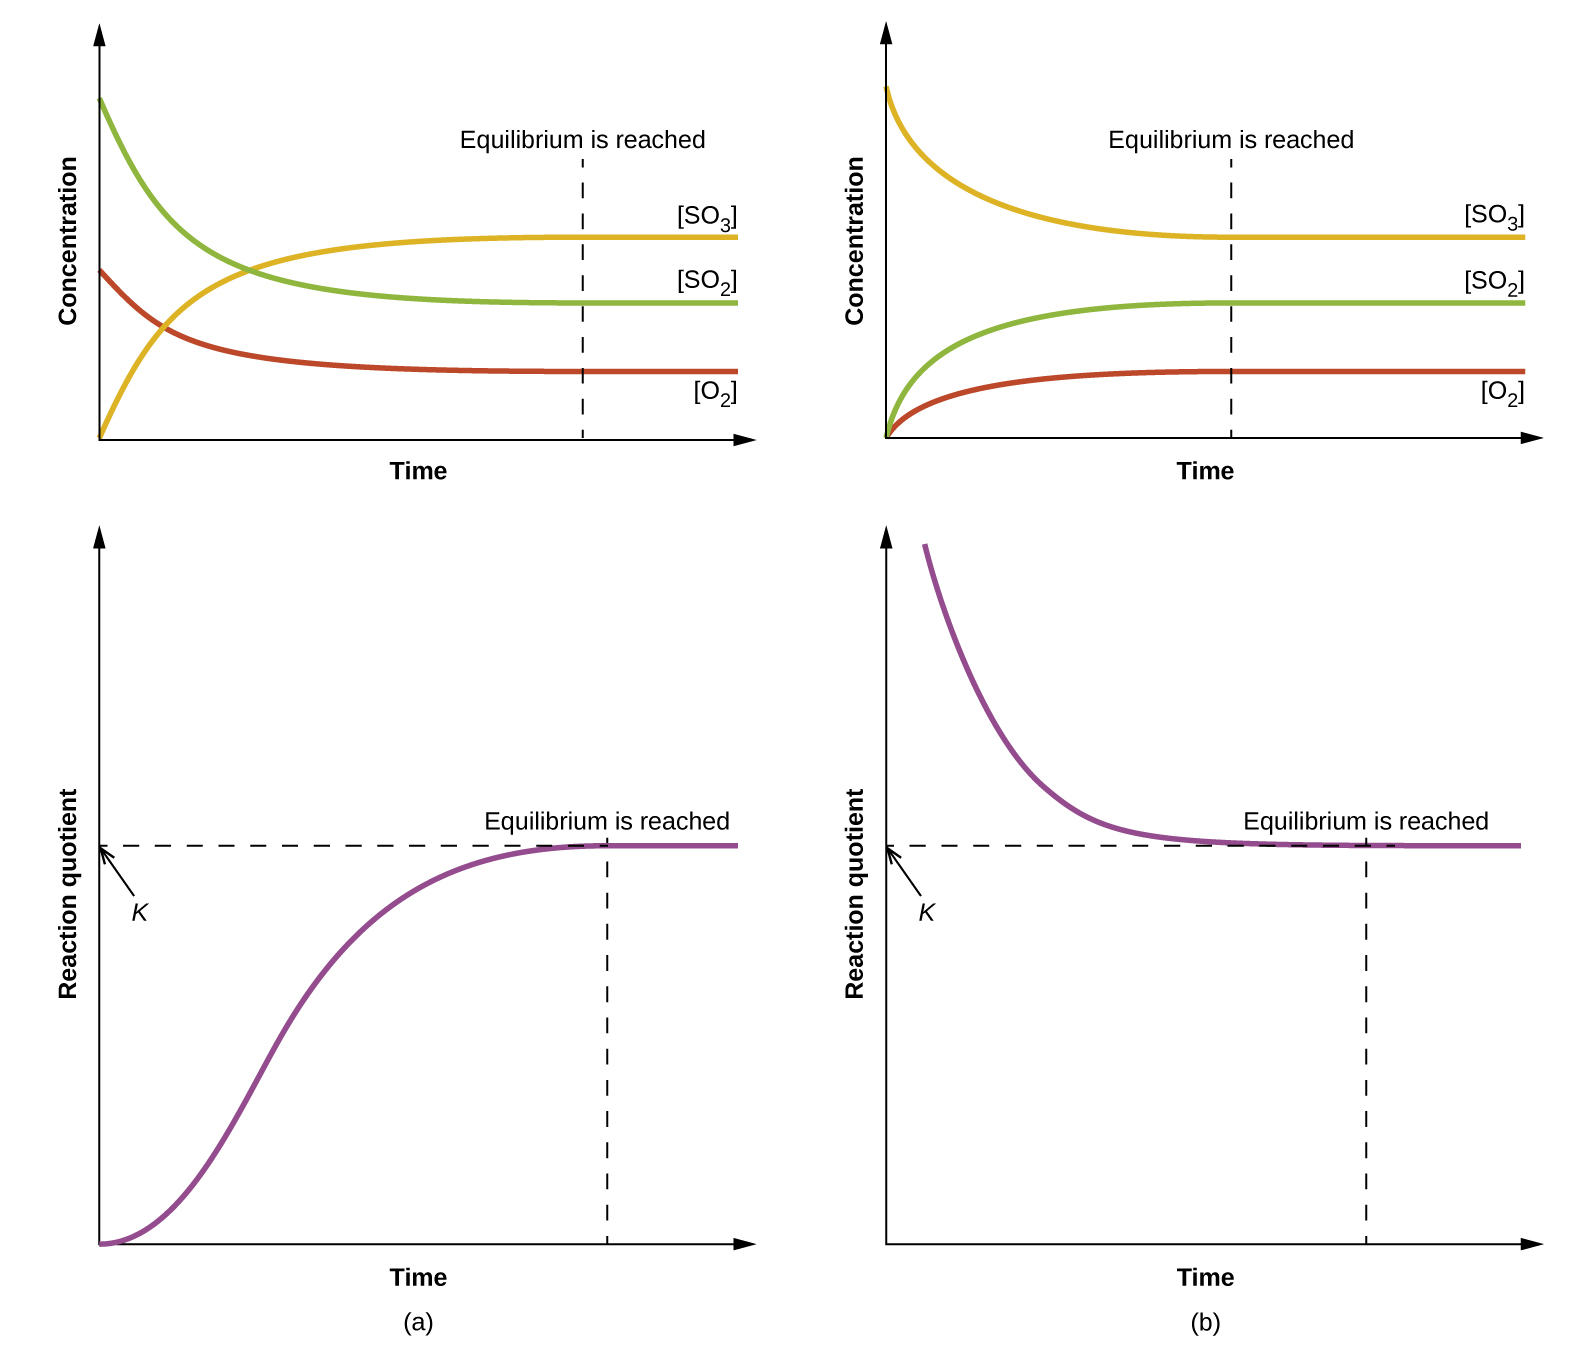 """Four graphs are shown and labeled, """"a,"""" """"b,"""" """"c,"""" and """"d."""" All four graphs have a vertical dotted line running through the middle labeled, """"Equilibrium is reached."""" The y-axis on graph a is labeled, """"Concentration,"""" and the x-axis is labeled, """"Time."""" Three curves are plotted on graph a. The first is labeled, """"[ S O subscript 2 ];"""" this line starts high on the y-axis, ends midway down the y-axis, has a steep initial slope and a more gradual slope as it approaches the far right on the x-axis. The second curve on this graph is labeled, """"[ O subscript 2 ];"""" this line mimics the first except that it starts and ends about fifty percent lower on the y-axis. The third curve is the inverse of the first in shape and is labeled, """"[ S O subscript 3 ]."""" The y-axis on graph b is labeled, """"Concentration,"""" and the x-axis is labeled, """"Time."""" Three curves are plotted on graph b. The first is labeled, """"[ S O subscript 2 ];"""" this line starts low on the y-axis, ends midway up the y-axis, has a steep initial slope and a more gradual slope as it approaches the far right on the x-axis. The second curve on this graph is labeled, """"[ O subscript 2 ];"""" this line mimics the first except that it ends about fifty percent lower on the y-axis. The third curve is the inverse of the first in shape and is labeled, """"[ S O subscript 3 ]."""" The y-axis on graph c is labeled, """"Reaction Quotient,"""" and the x-axis is labeled, """"Time."""" A single curve is plotted on graph c. This curve begins at the bottom of the y-axis and rises steeply up near the top of the y-axis, then levels off into a horizontal line. The top point of this line is labeled, """"k."""" The y-axis on graph d is labeled, """"Reaction Quotient,"""" and the x-axis is labeled, """"Time."""" A single curve is plotted on graph d. This curve begins near the edge of the top of the y-axis and falls steeply toward the x-axis, then levels off into a horizontal line. The bottom point of this line is labeled, """"k."""""""